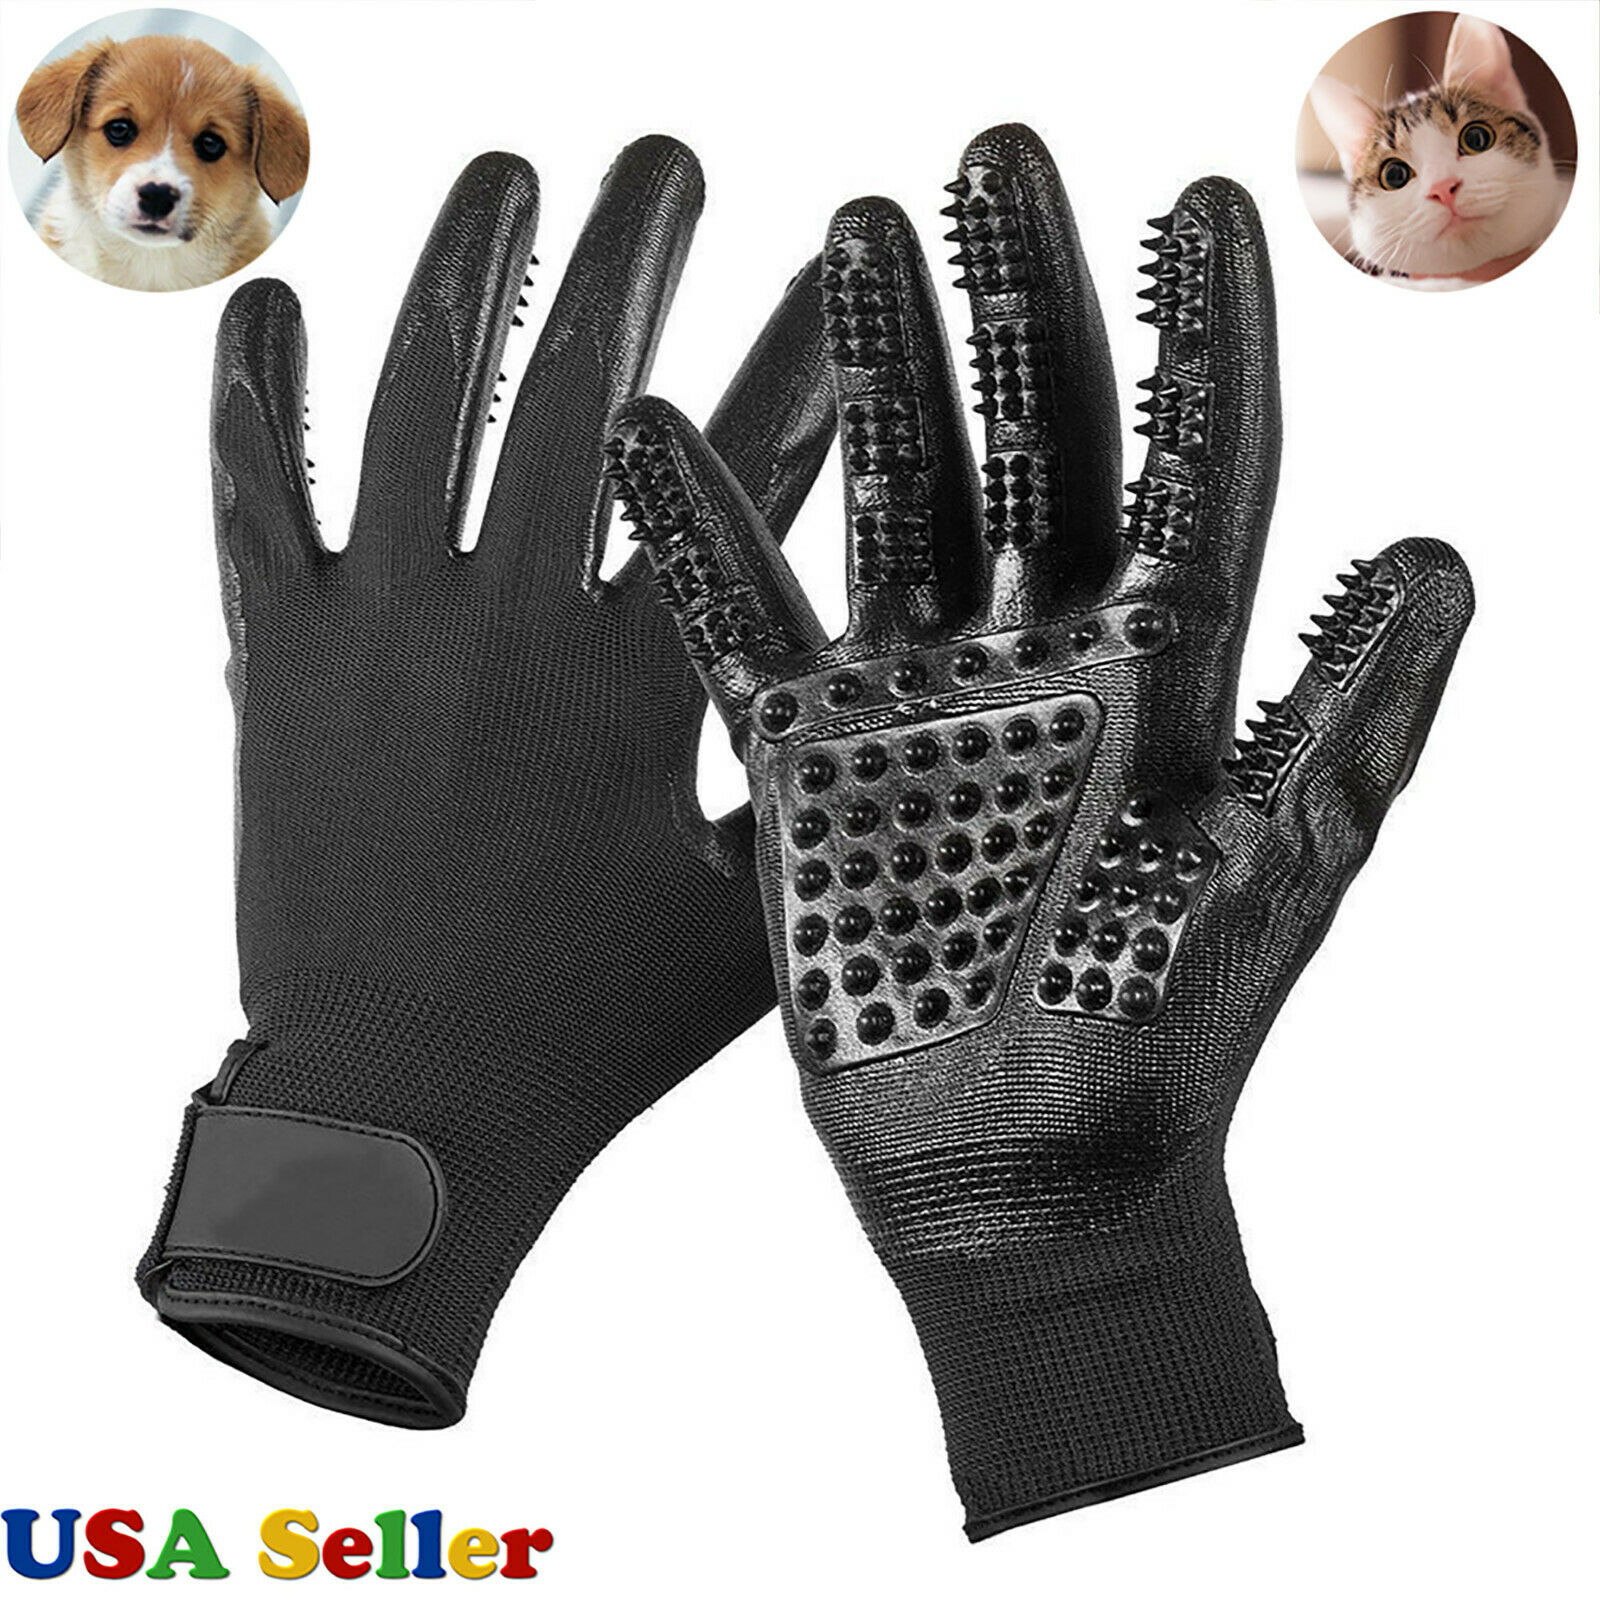 Pet Dog Cat Ninja Grooming Gloves Hair Fur Remover Bathing Shedding Massage Pair Brushes, Combs & Rakes